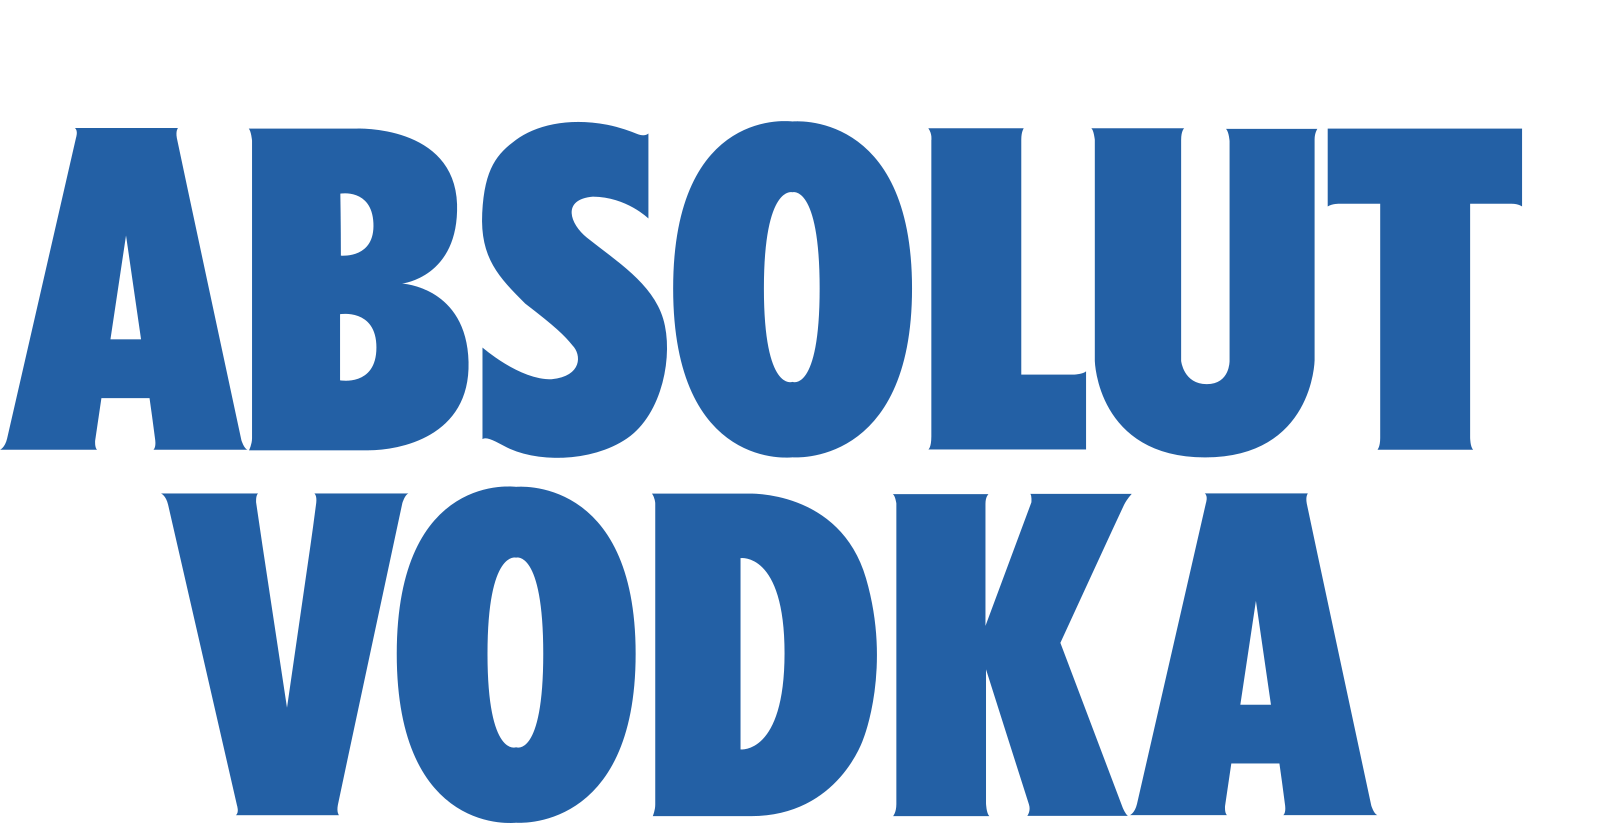 Absolut Vodka Trademark logo - Logok - Absolut Logo PNG